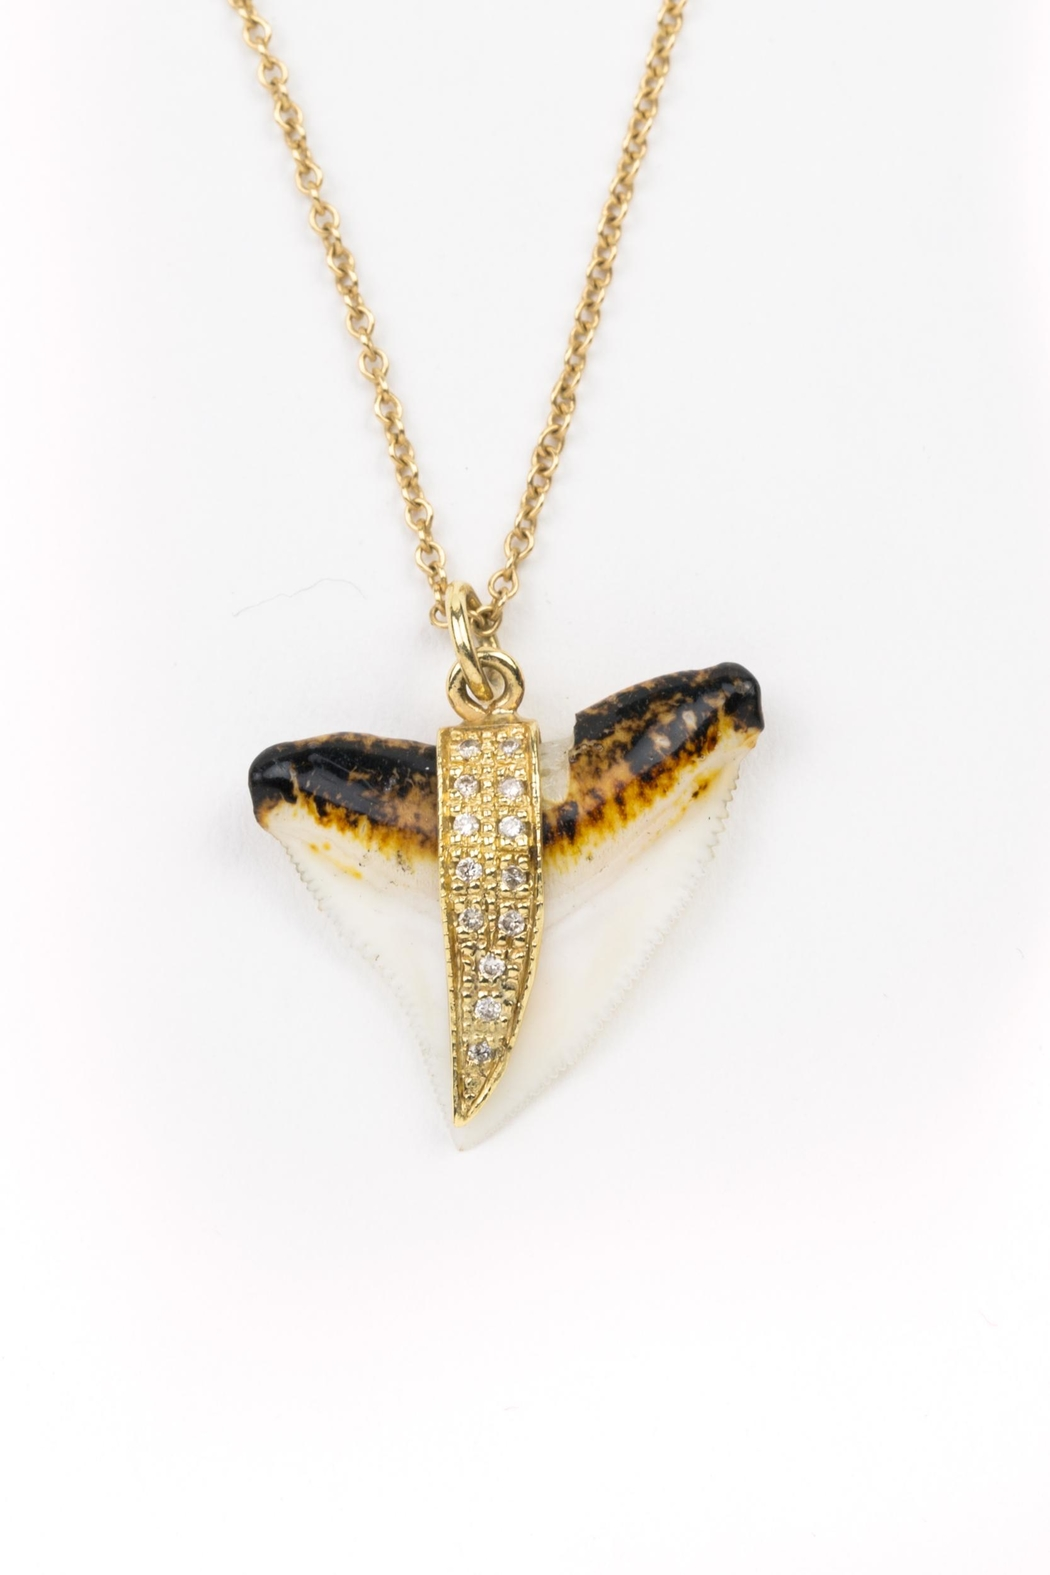 michelle shark photo tooth necklace jan handmade pendant am james jewelry necklaces